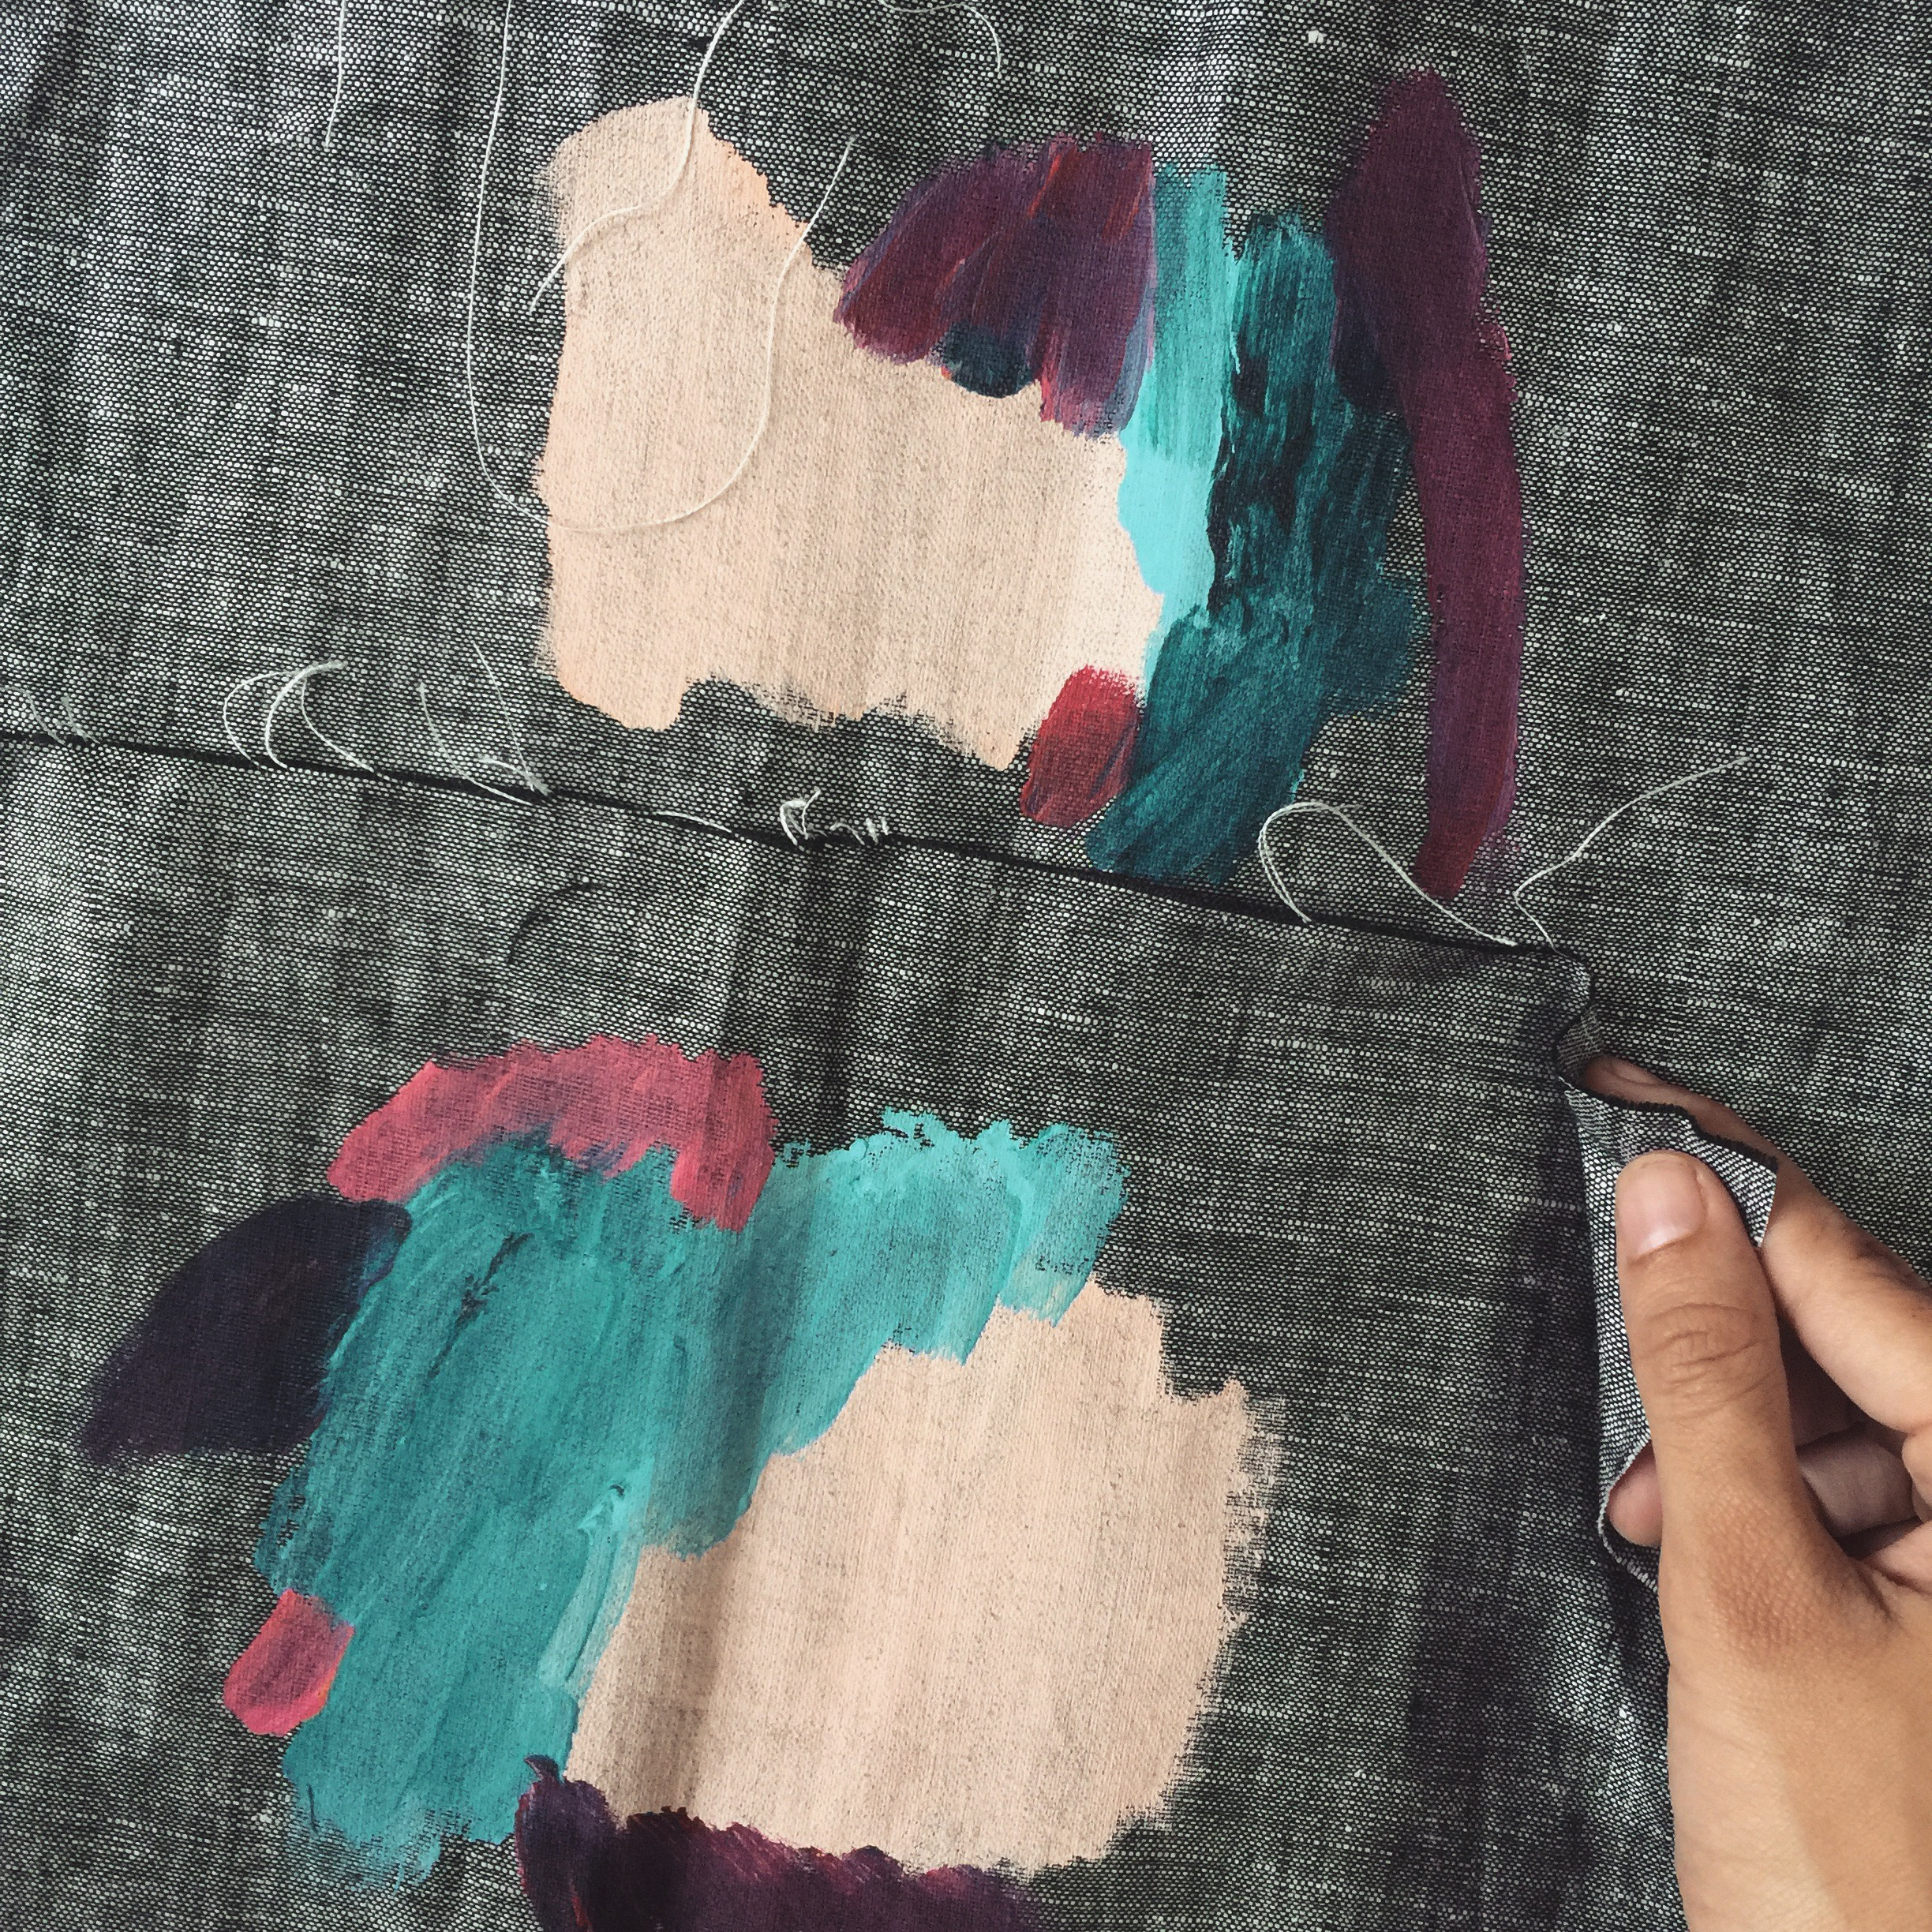 Textile Design by artist Nadia Nizamudin Instagram Crush www.trialbyinspiration.com